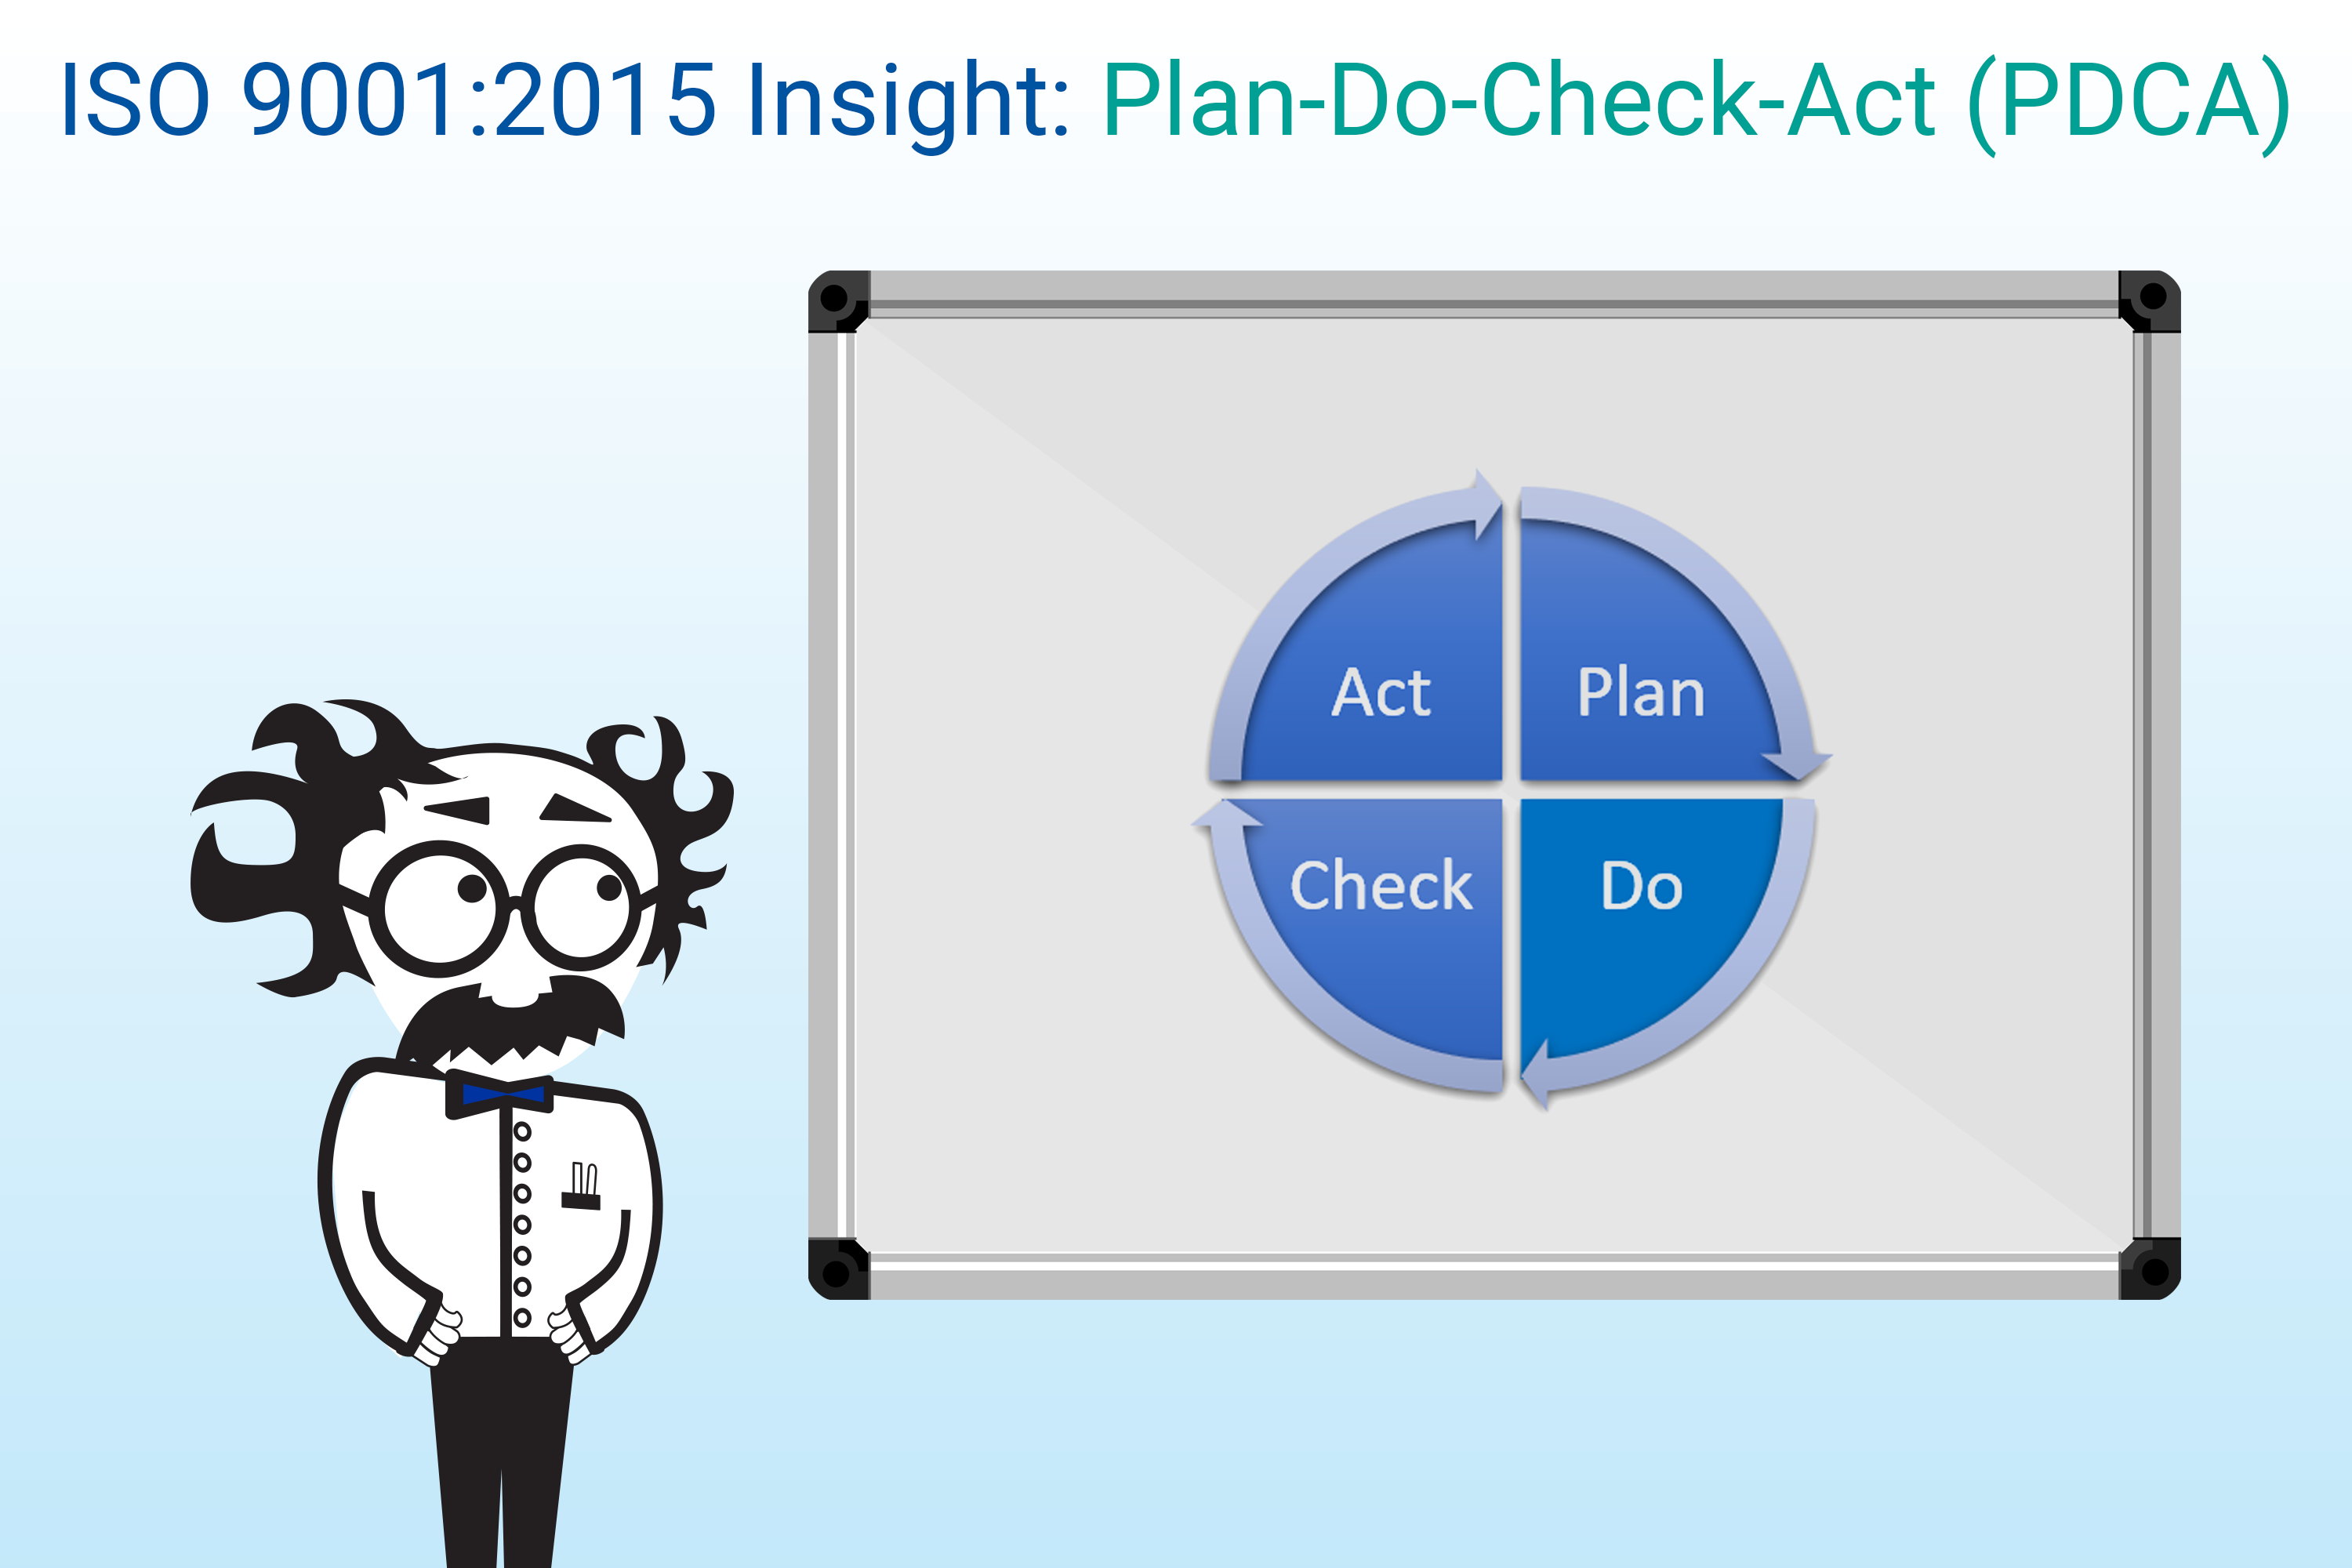 ISO 9001:2015 Insight: Plan-Do-Check-Act (PDCA)